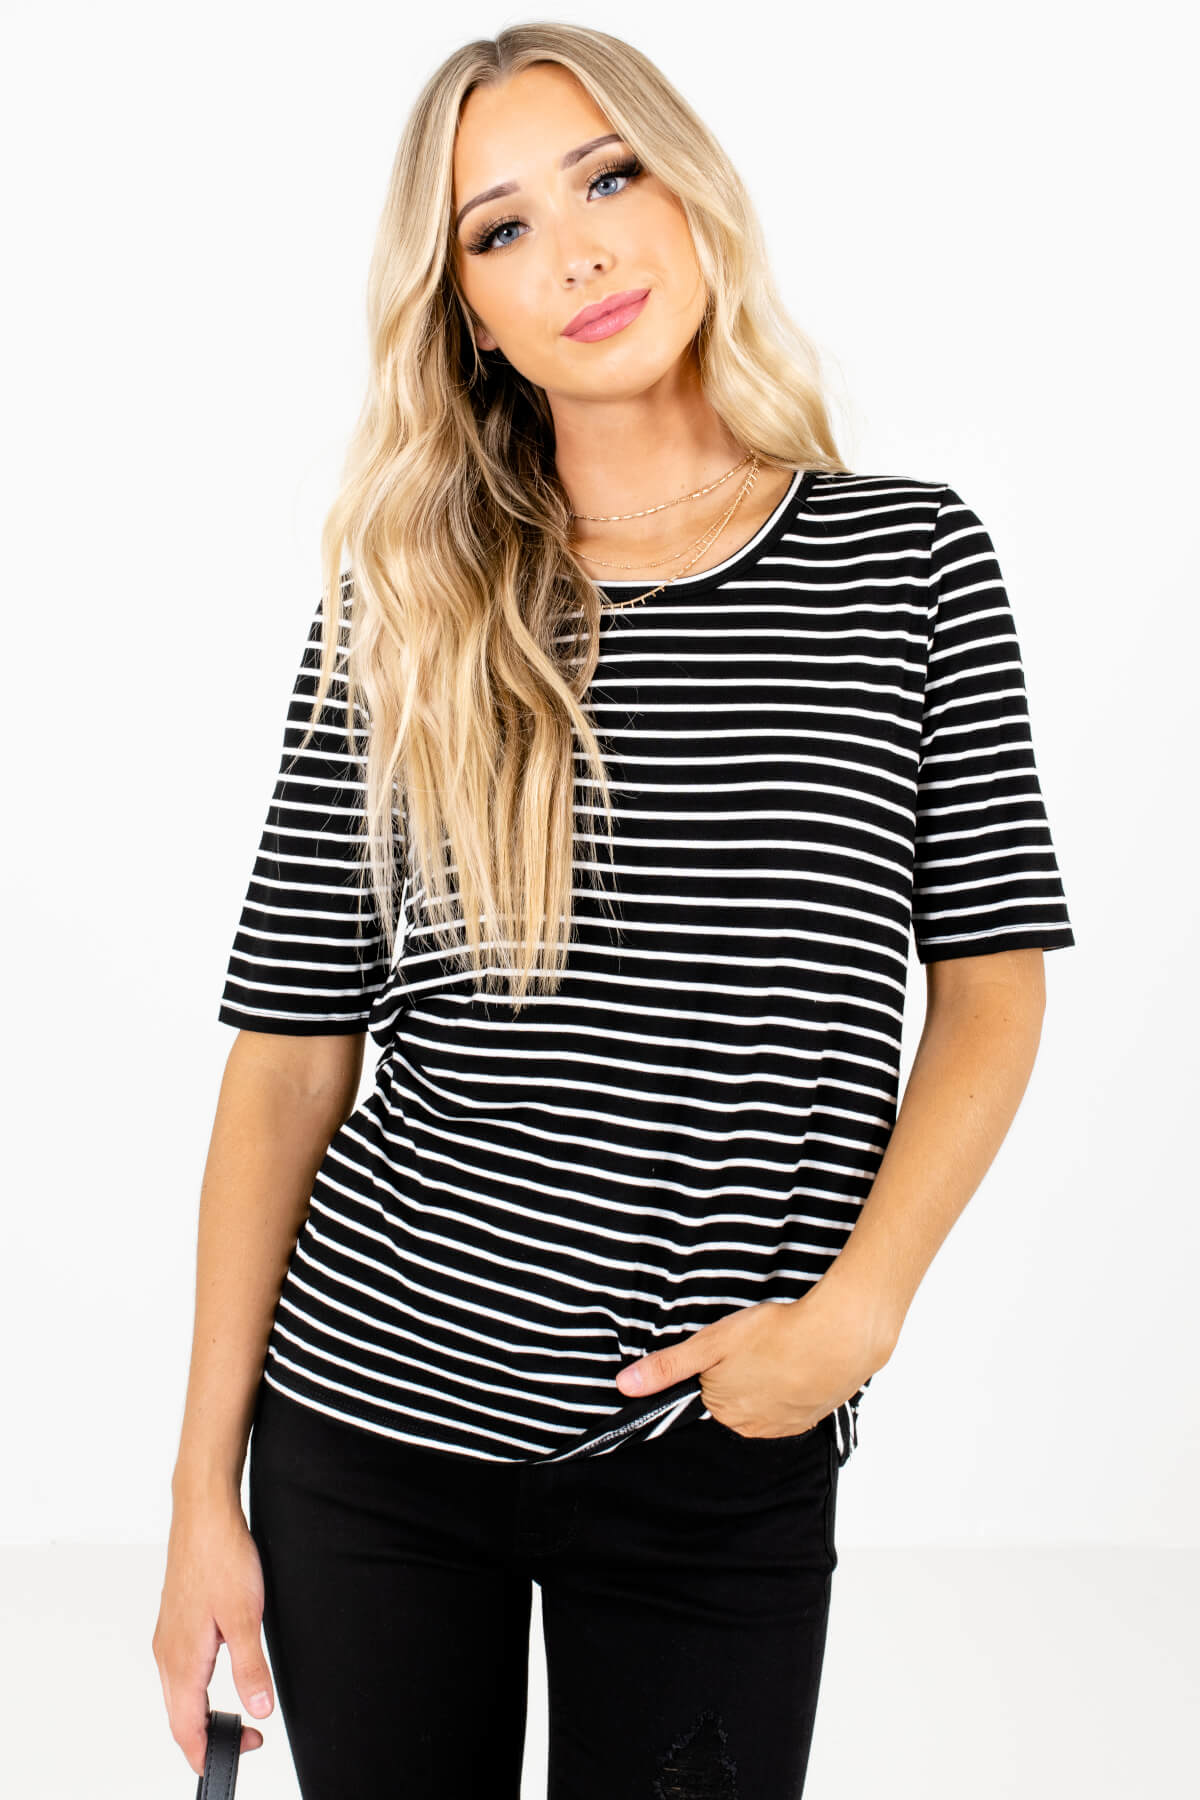 White and Black Stripe Patterned Boutique Tops for Women